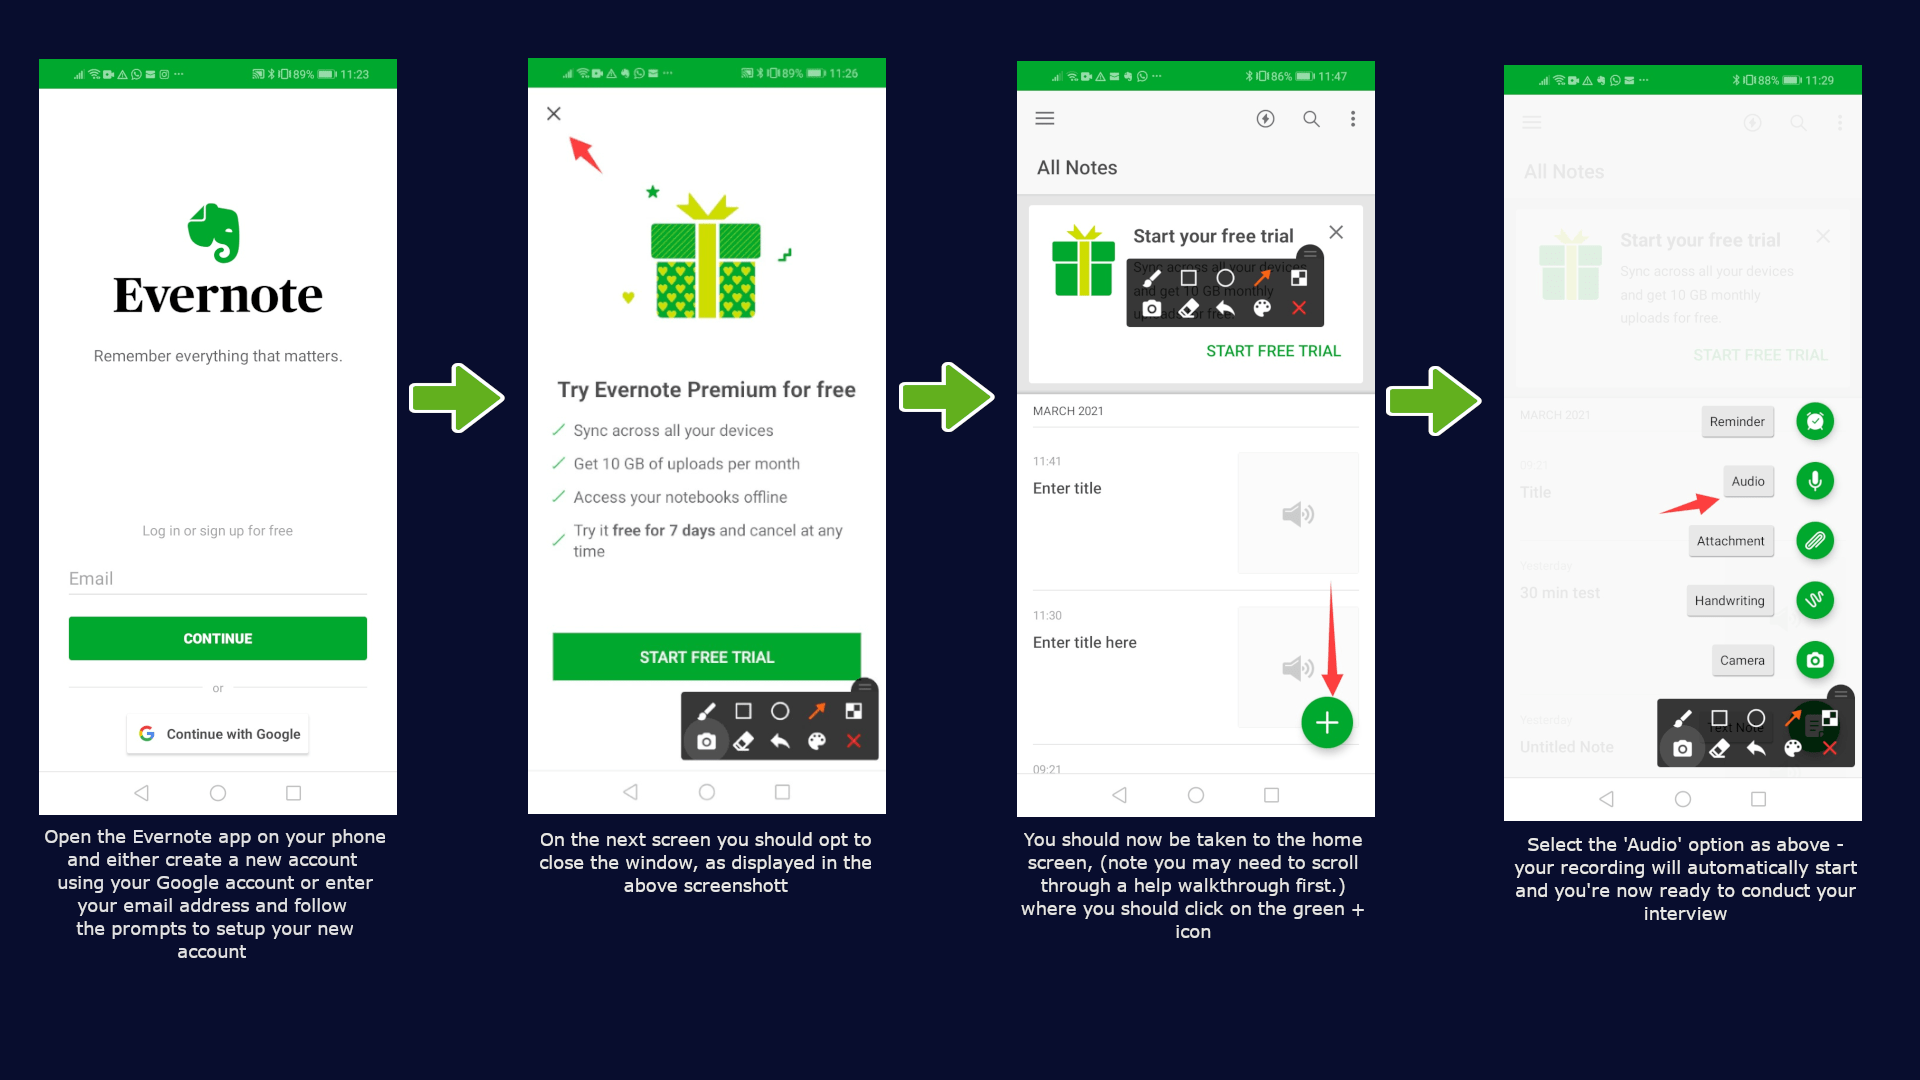 Evernote steps